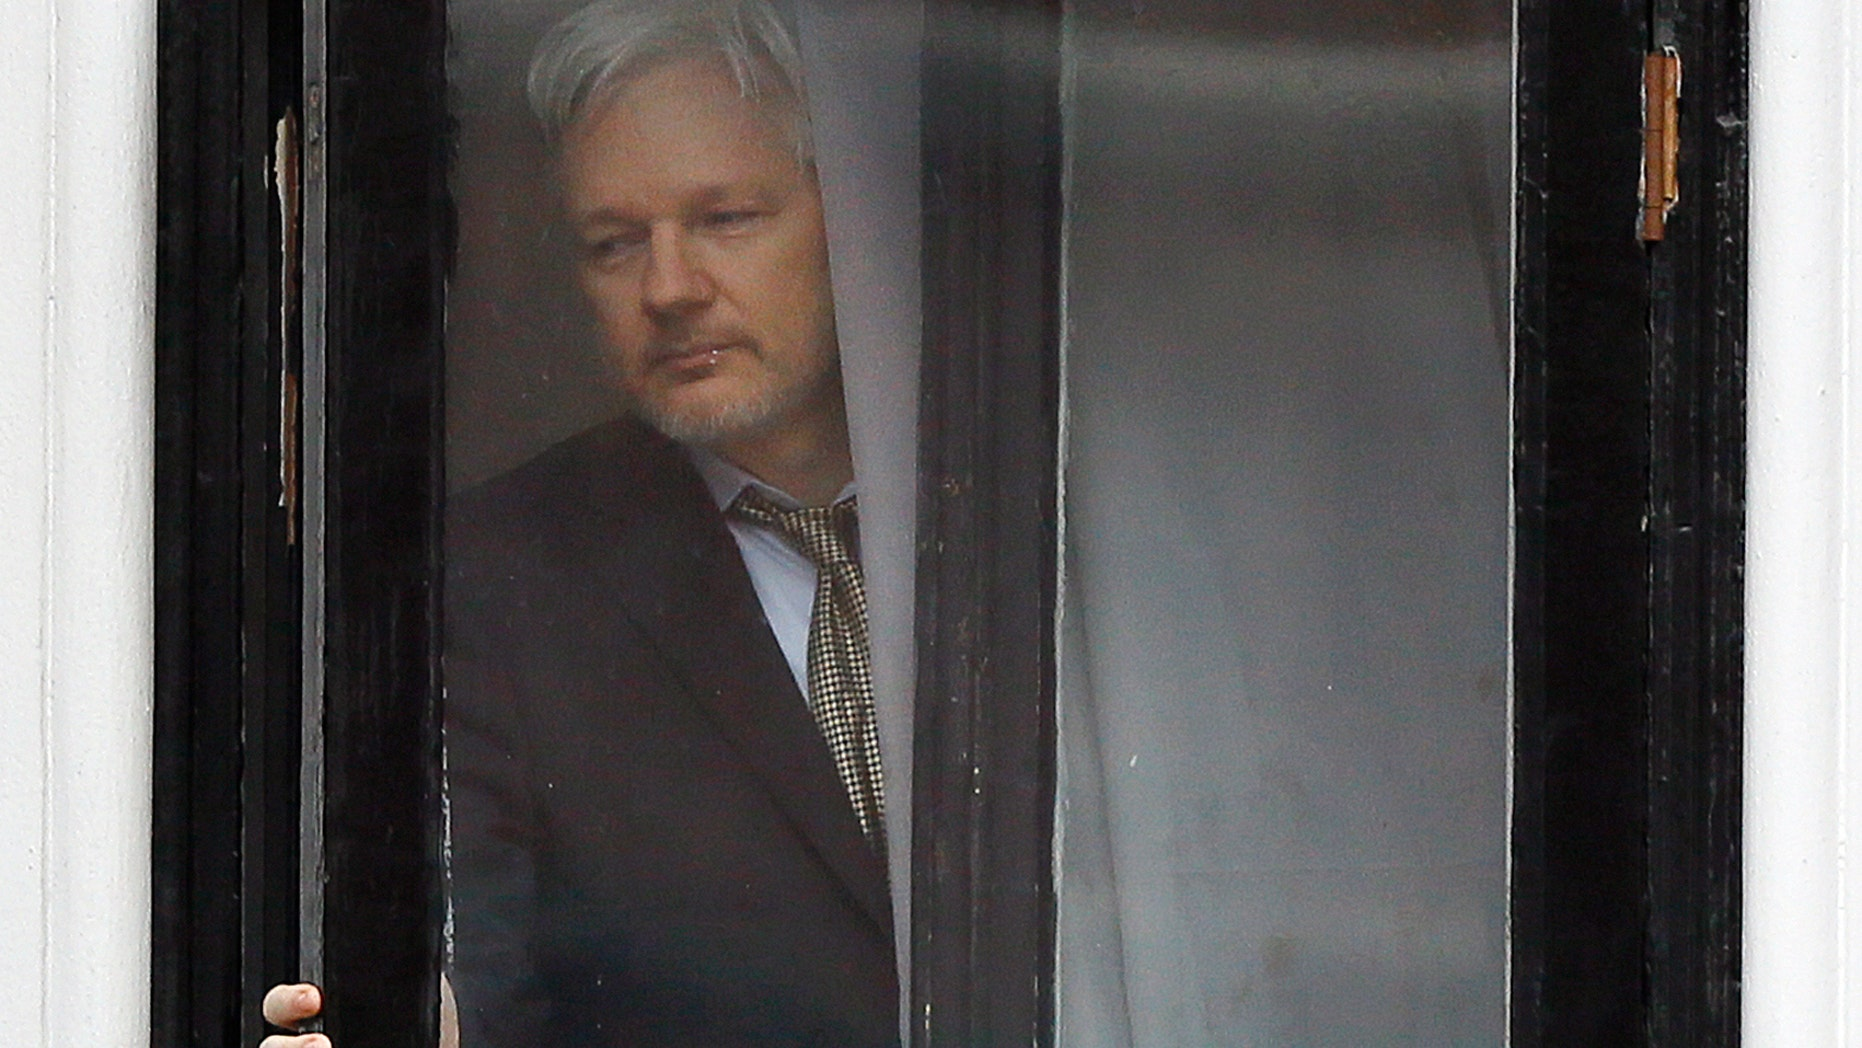 Wikileaks founder Julian Assange loses case over embassy rules